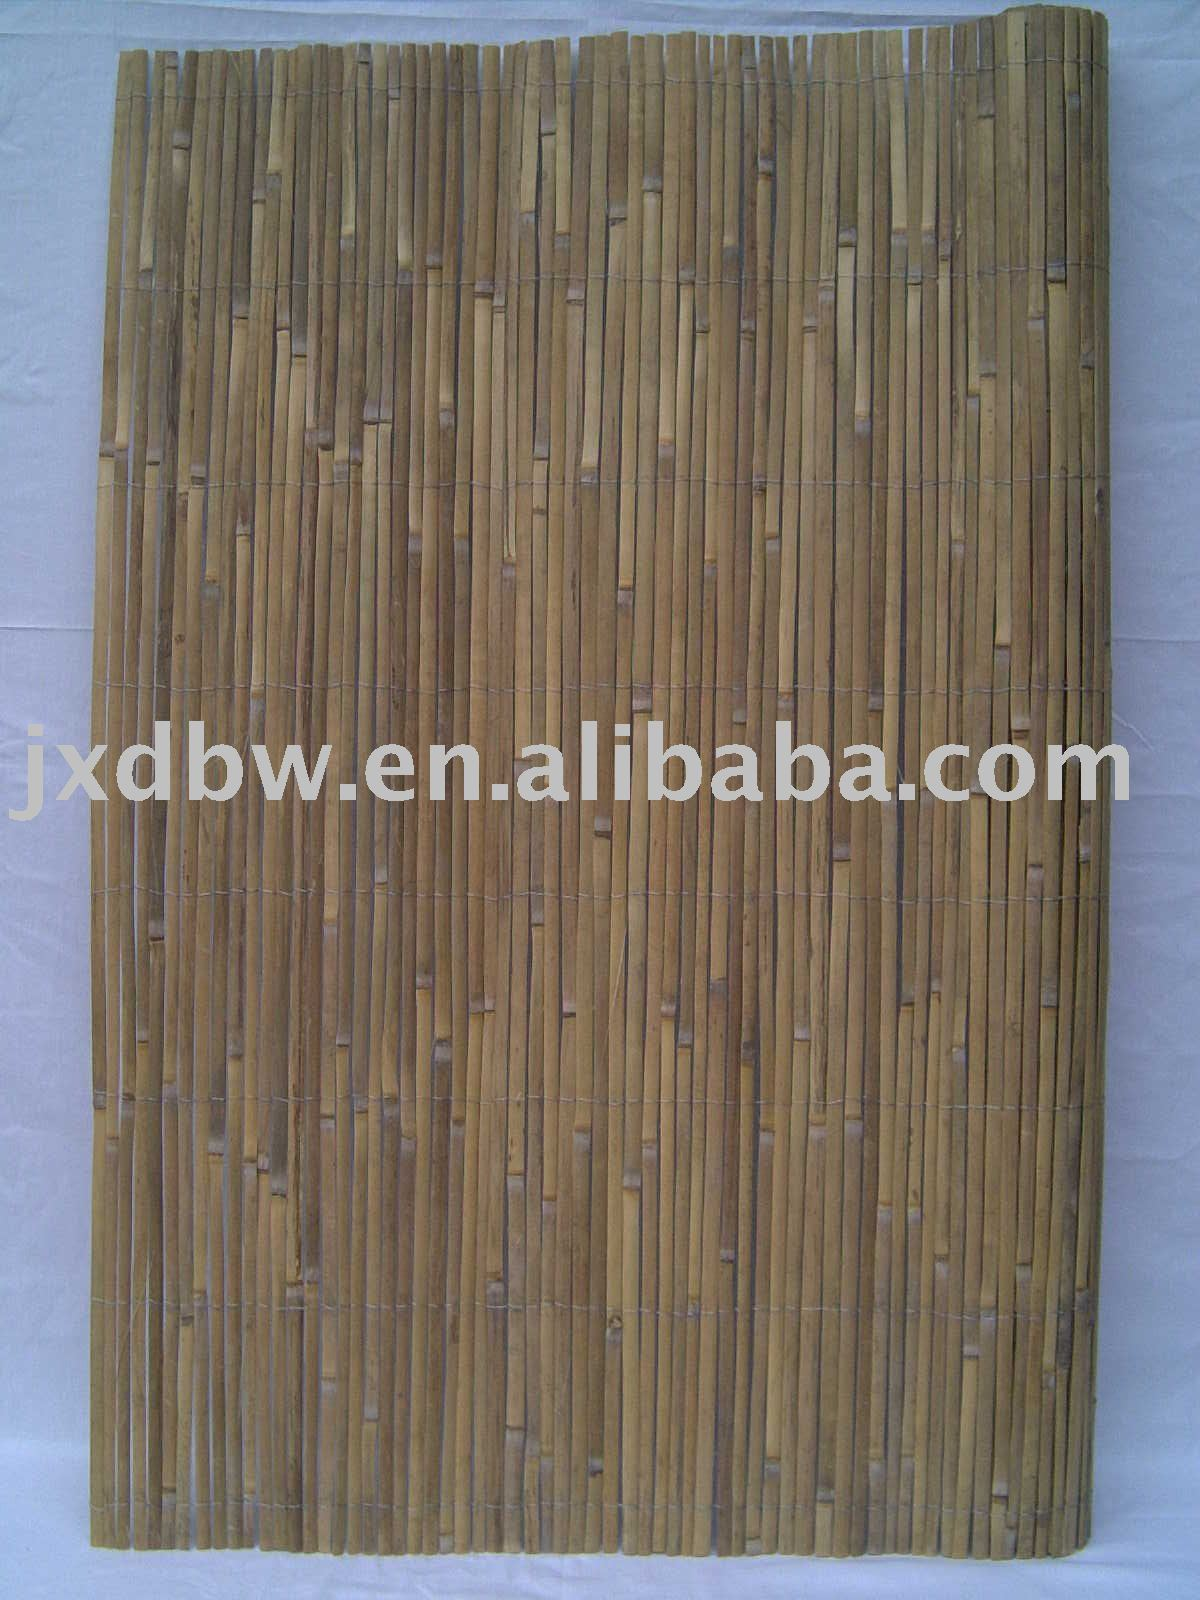 Gavalnized Wire Woven Bamboo Stake Screen Fence